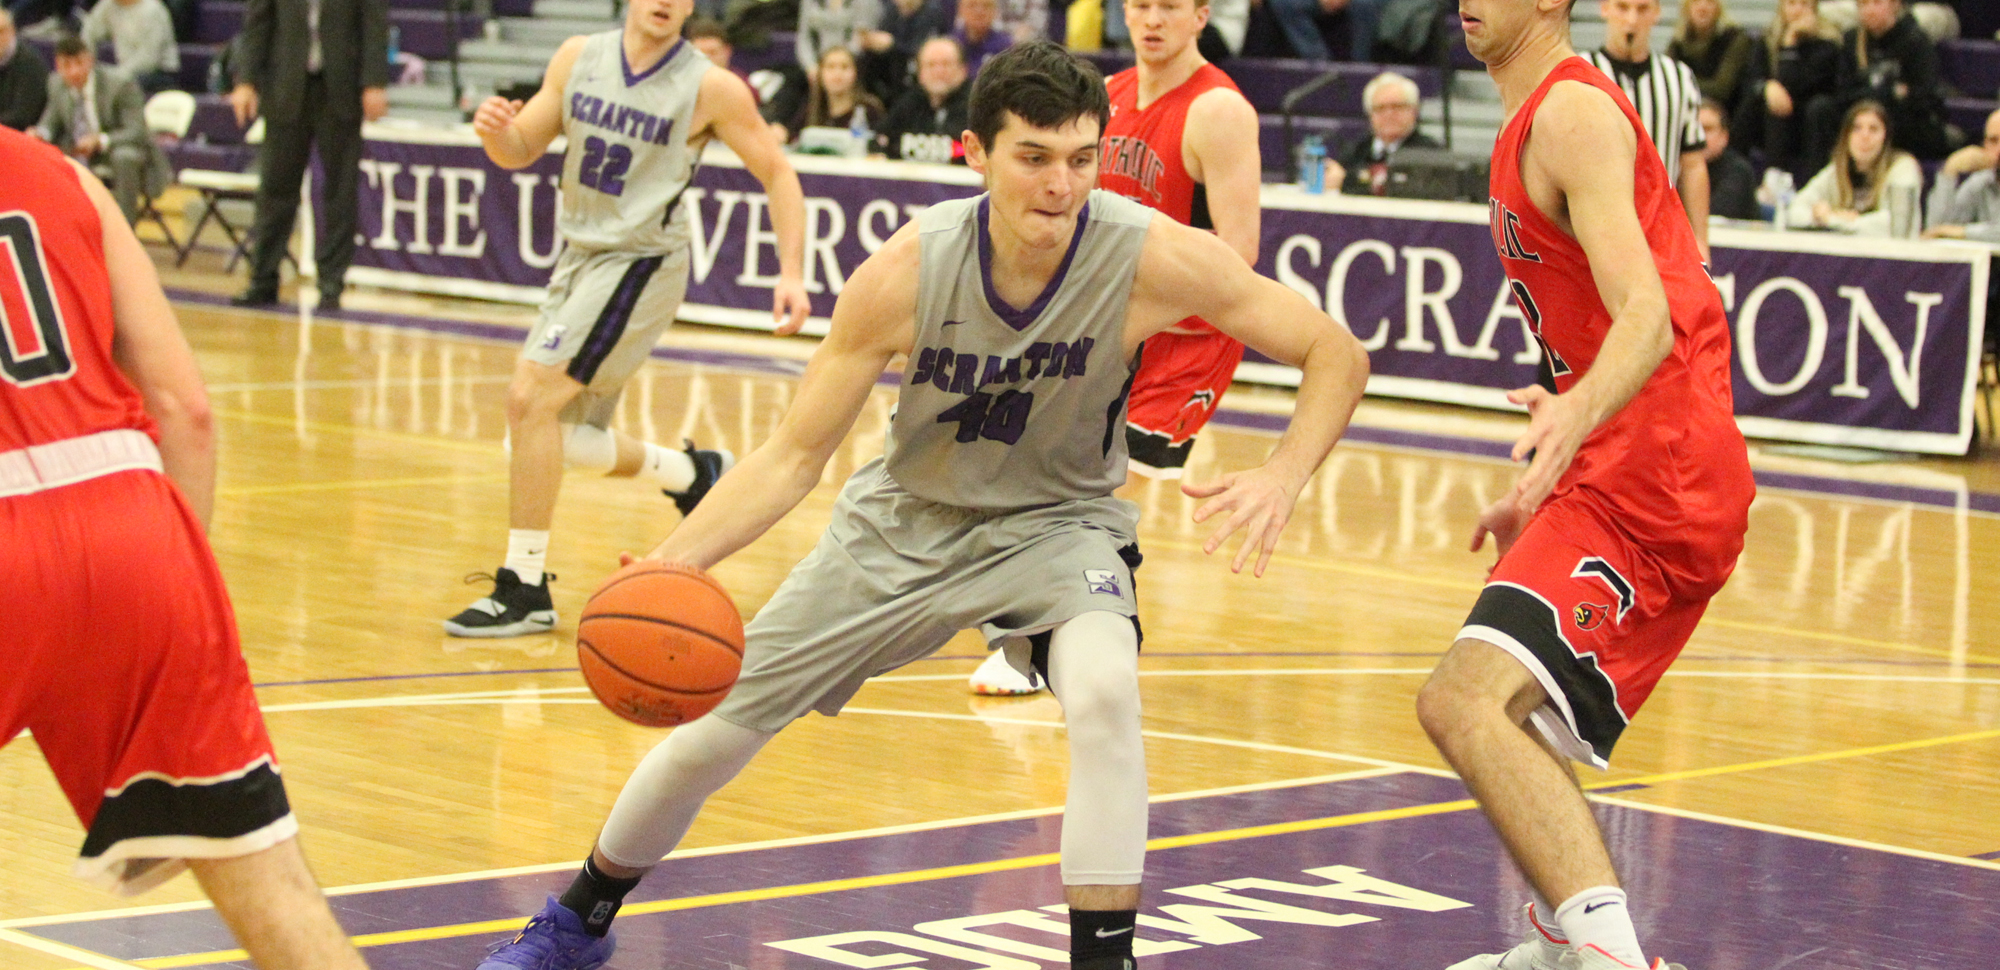 Sophomore Nolan Genasevich posted a double-double on career-highs of 16 points and 11 rebounds on Saturday to lead the Royals past Goucher. © Photo by Timothy R. Dougherty / doubleeaglephotography.com